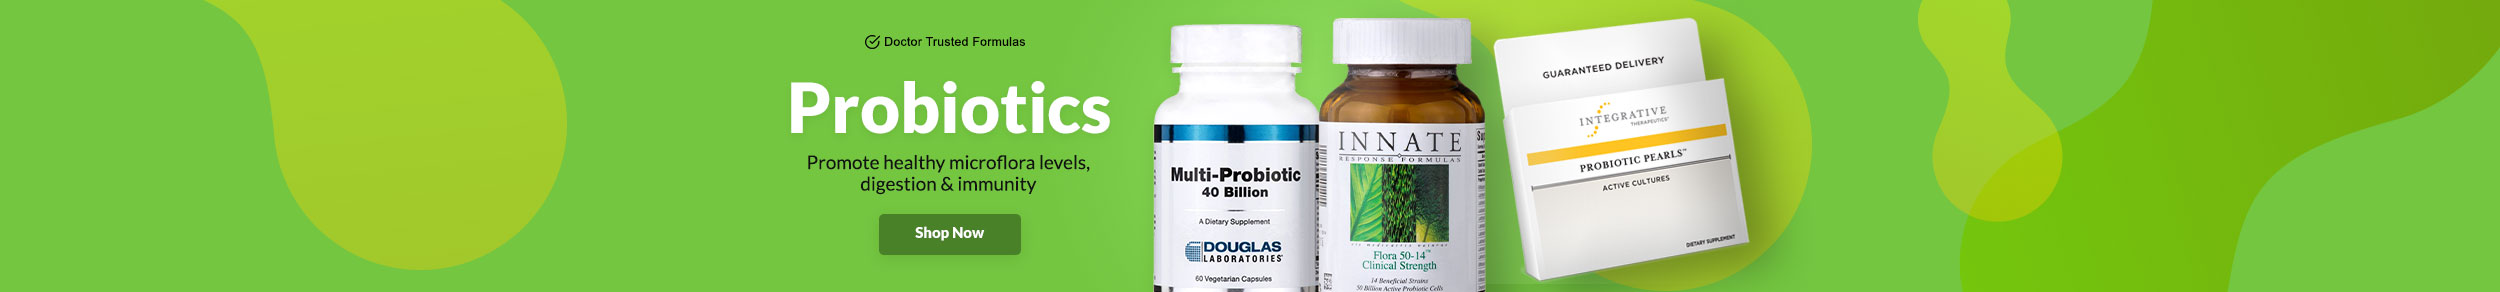 https://i3.pureformulas.net/images/static/Interest-Probiotics_slide1-053118.jpg